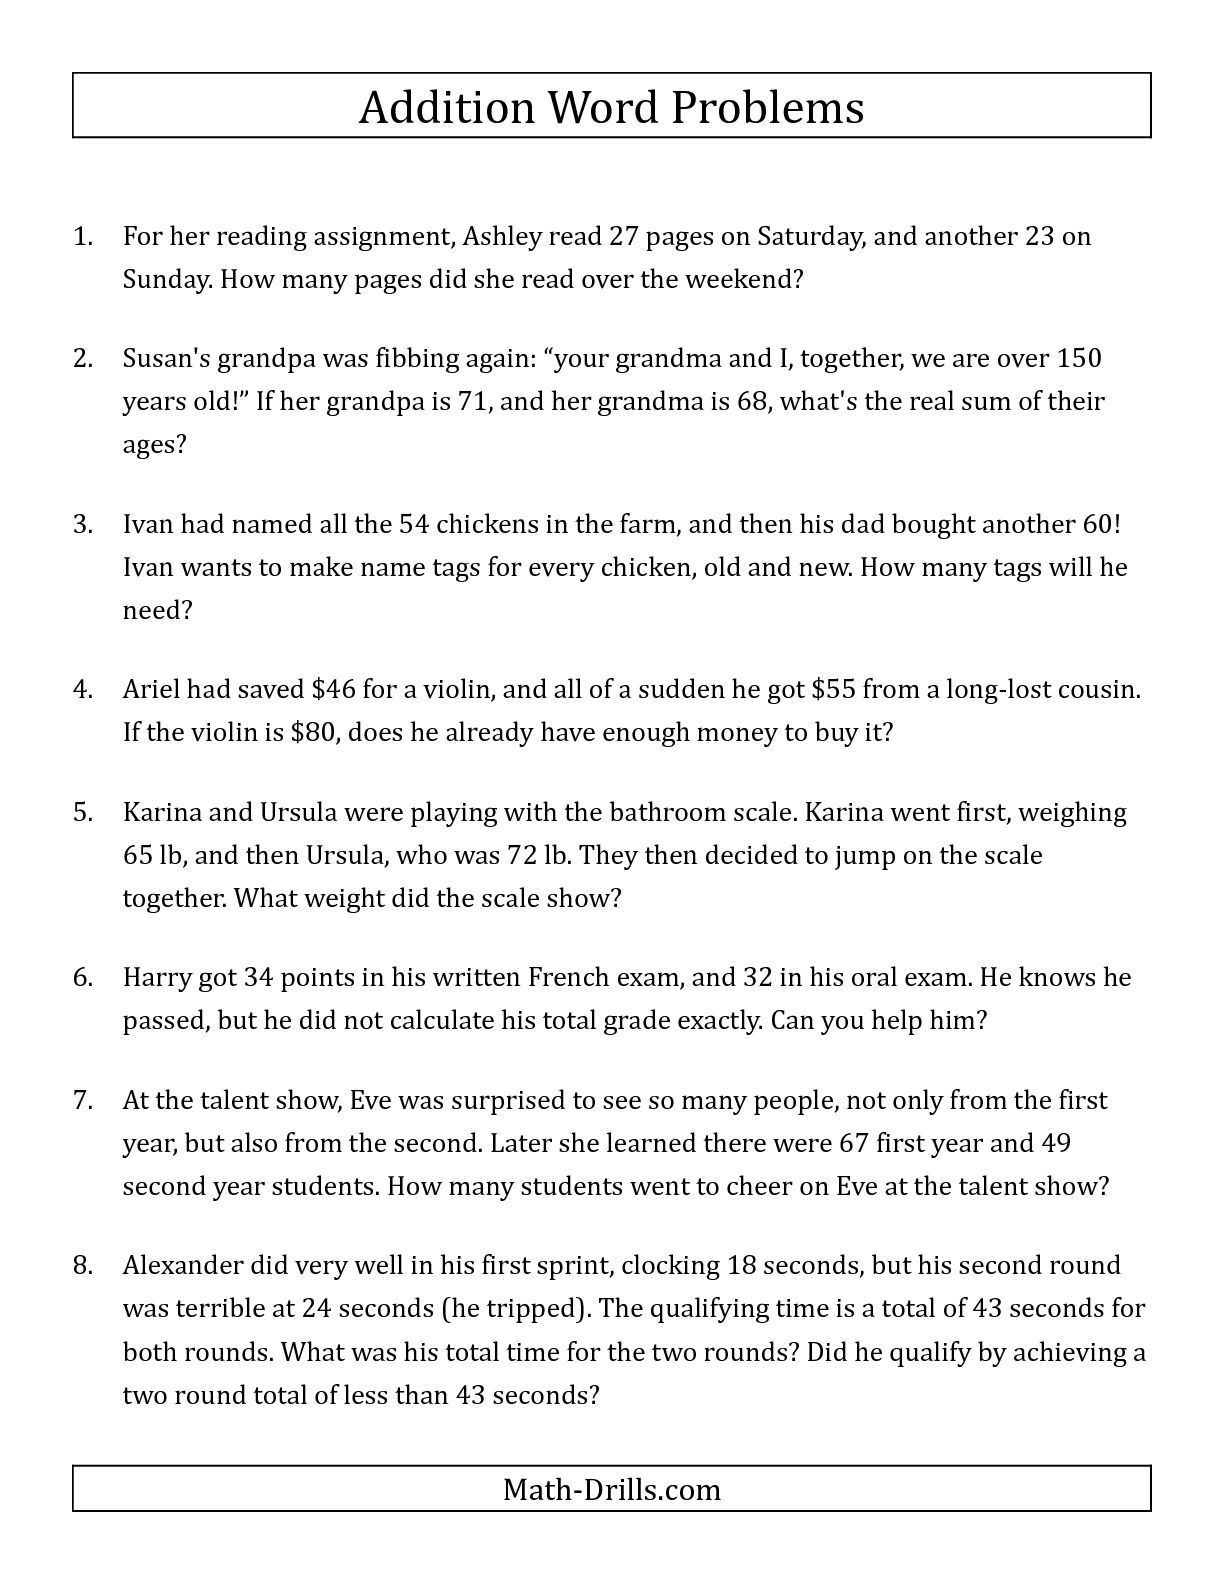 Single-Step Addition Word Problems Using Two-Digit Numbers (A) Word  Problems Worksheet   Addition word problems [ 1584 x 1224 Pixel ]